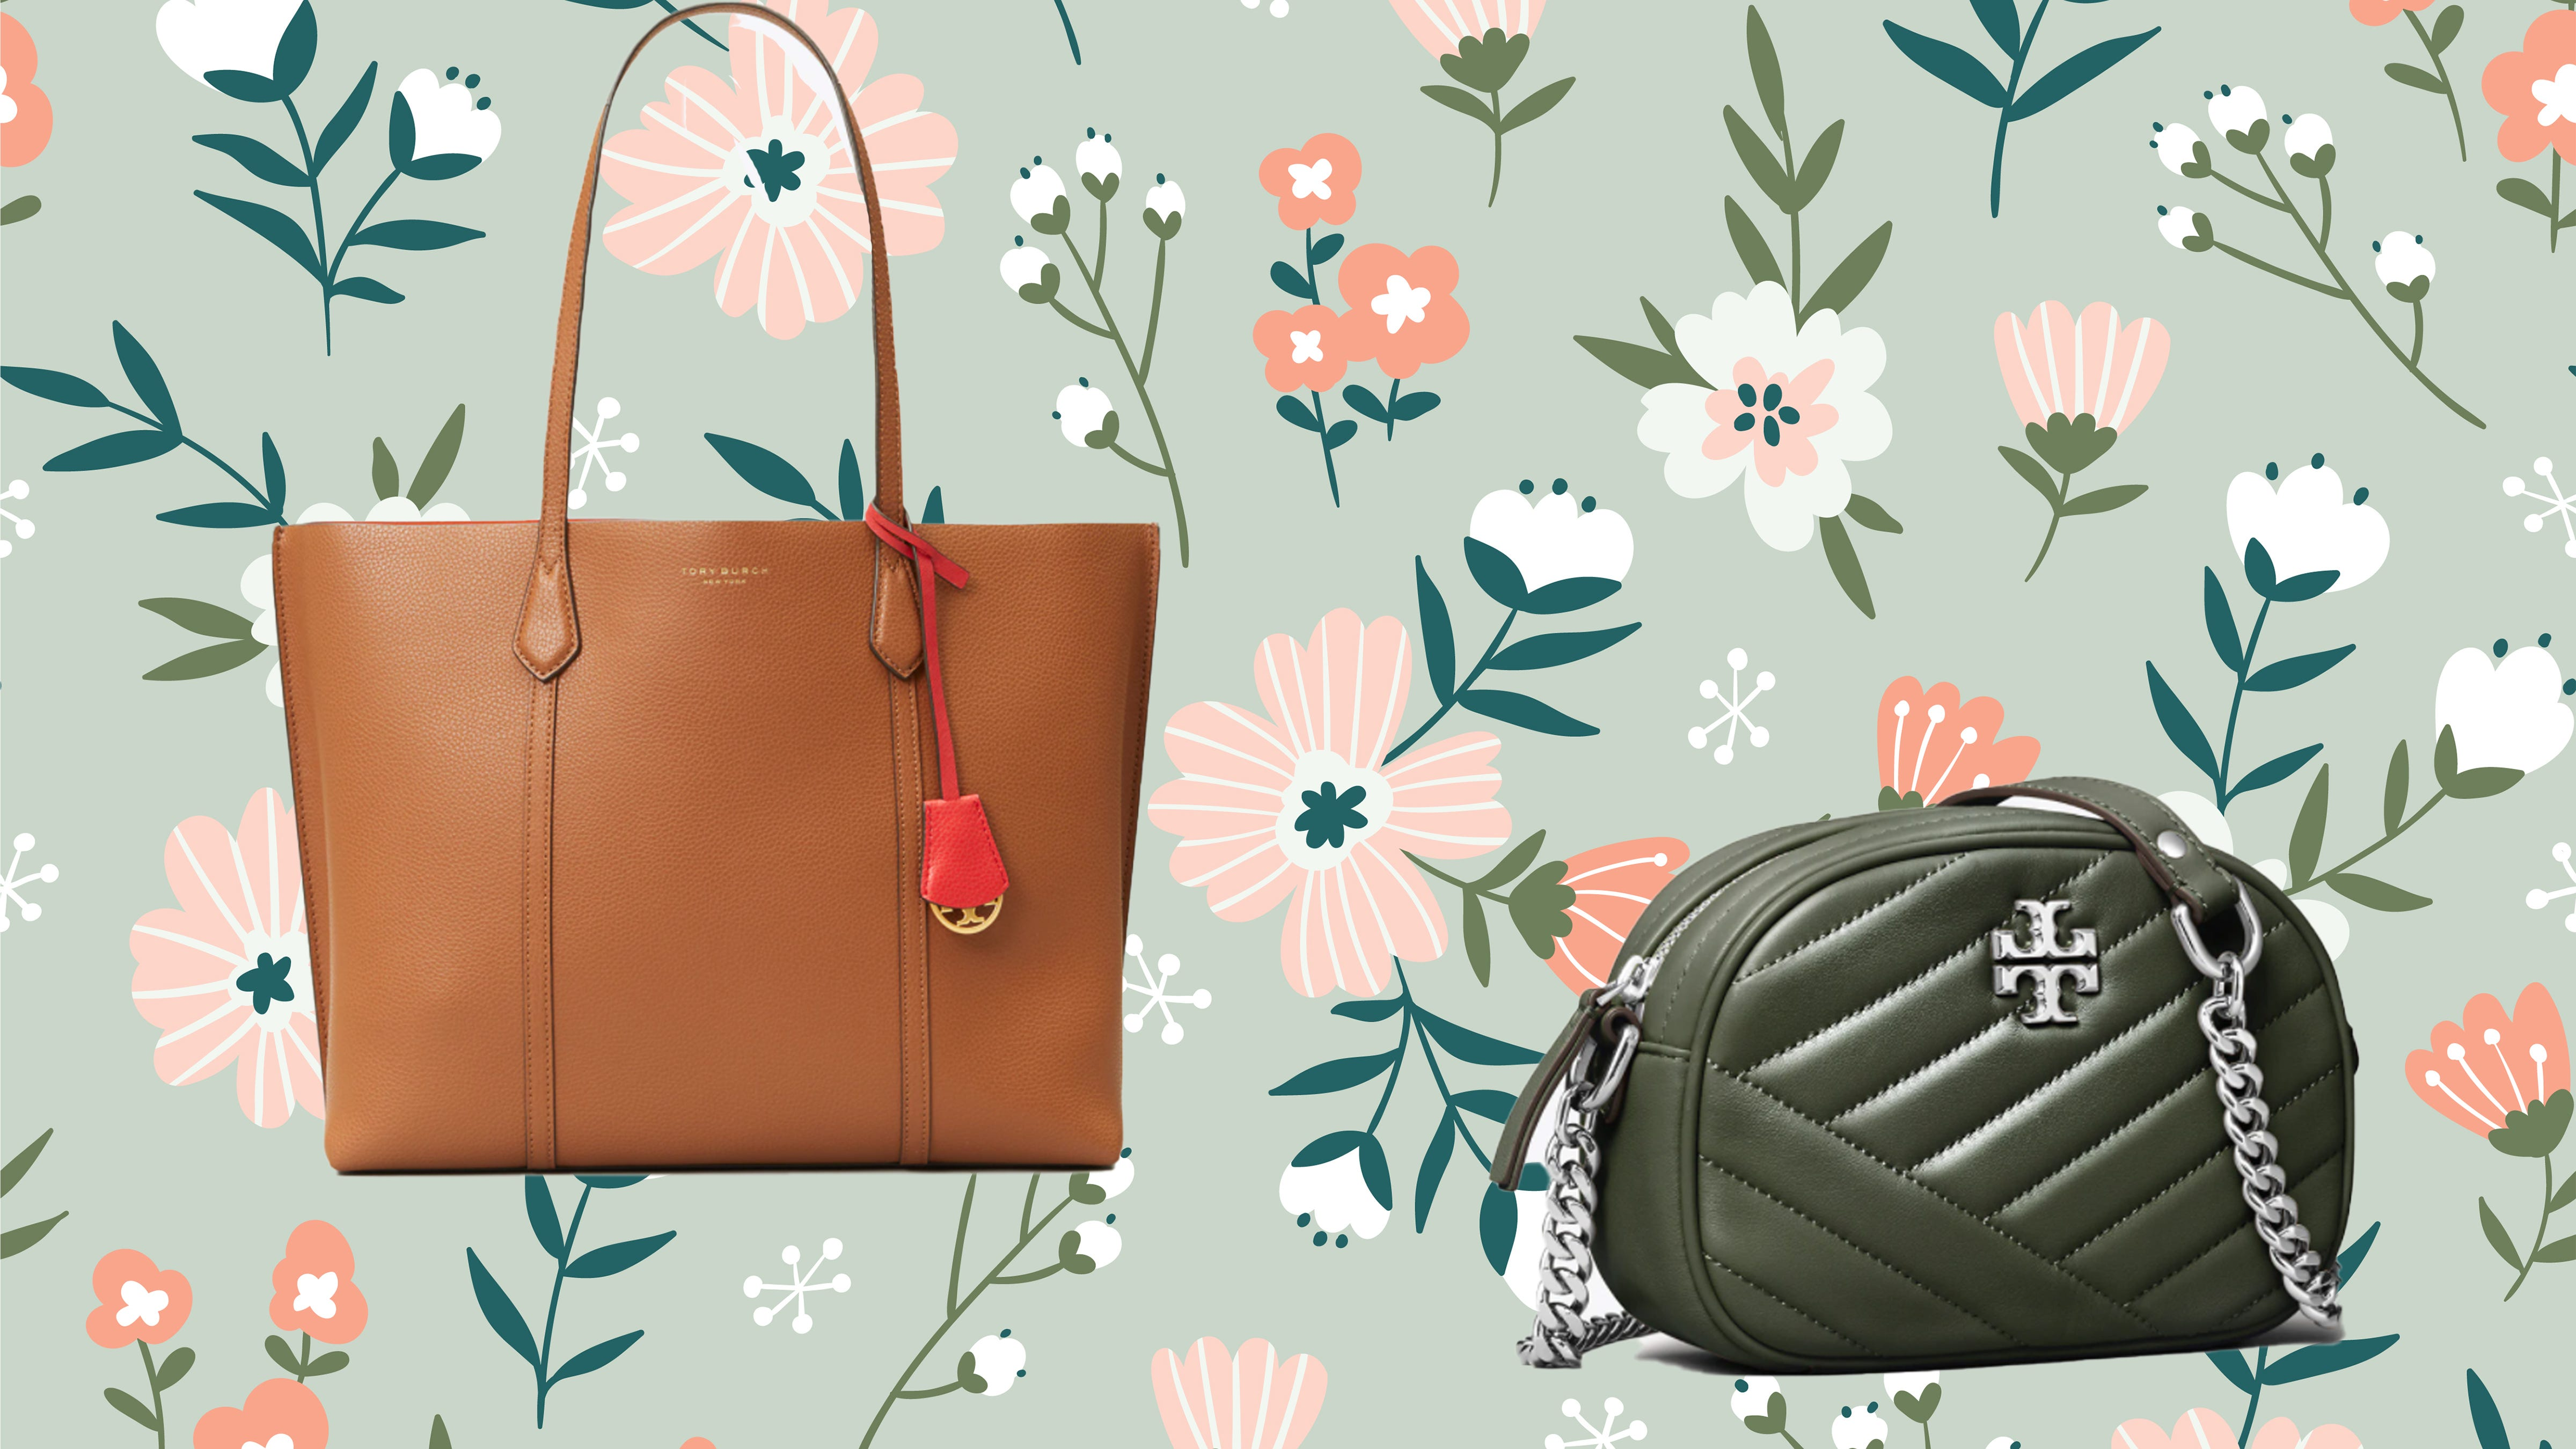 Shop the semi-annual savings event for up to 60% off